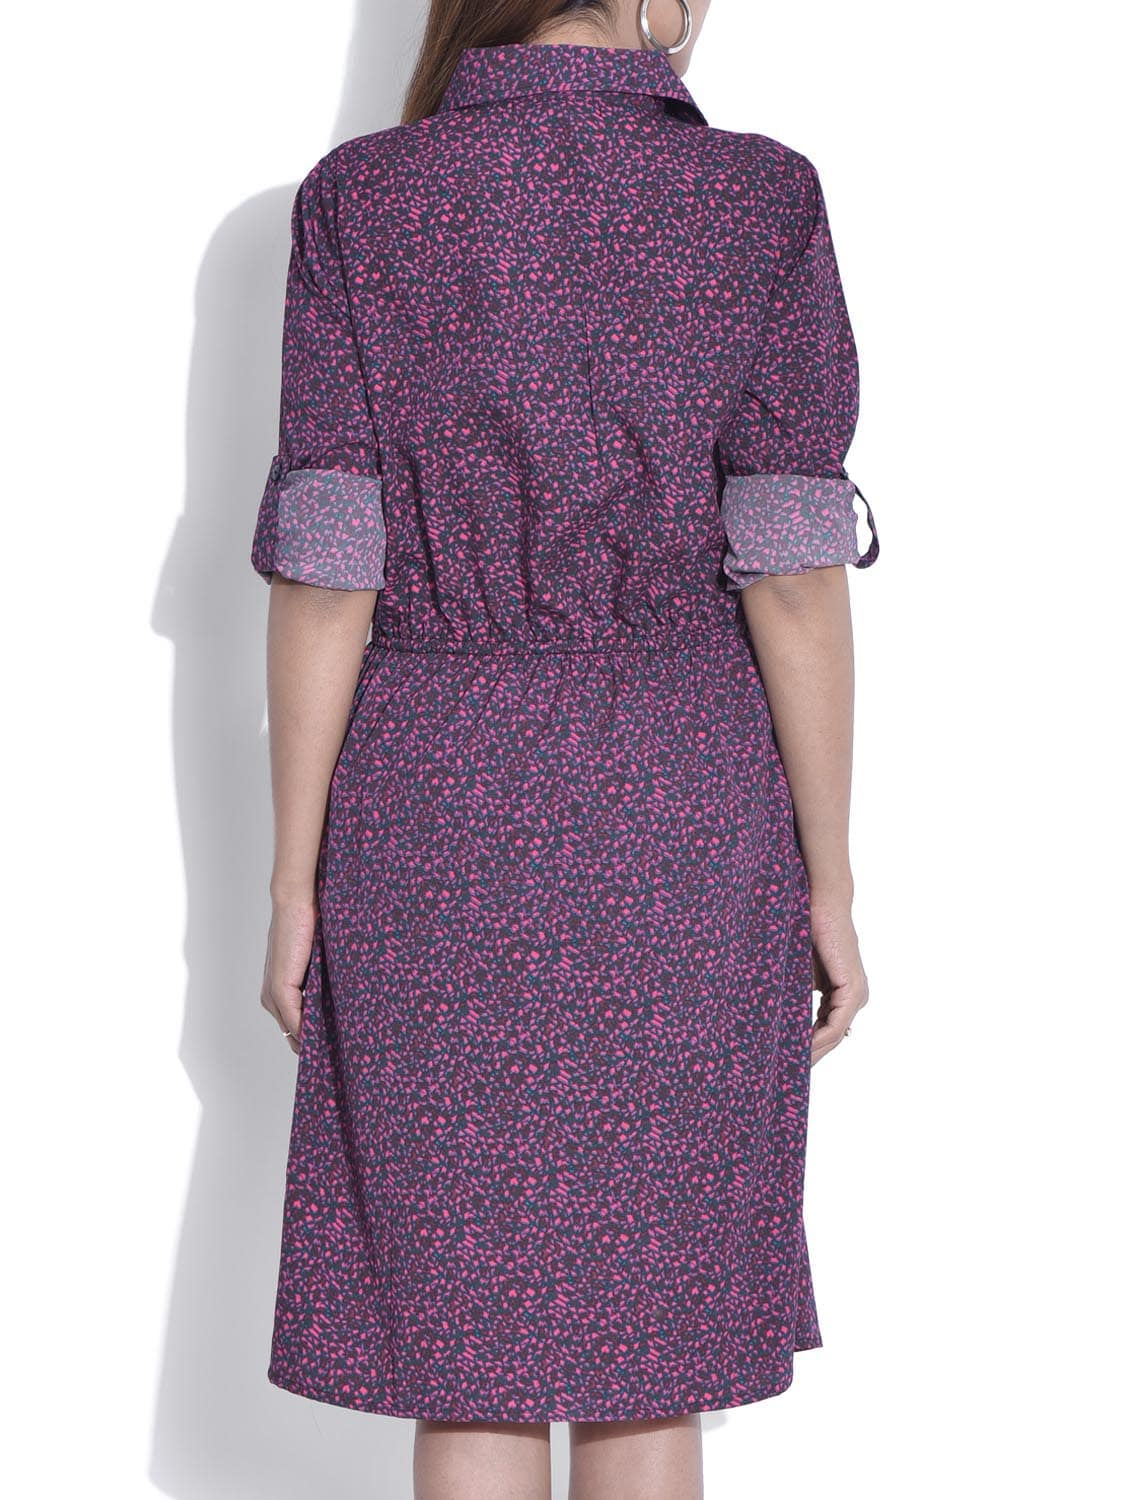 7f6a138a38d Buy Purple Poly Crepe Shirt Dress for Women from Color Cocktail for ₹472 at  57% off